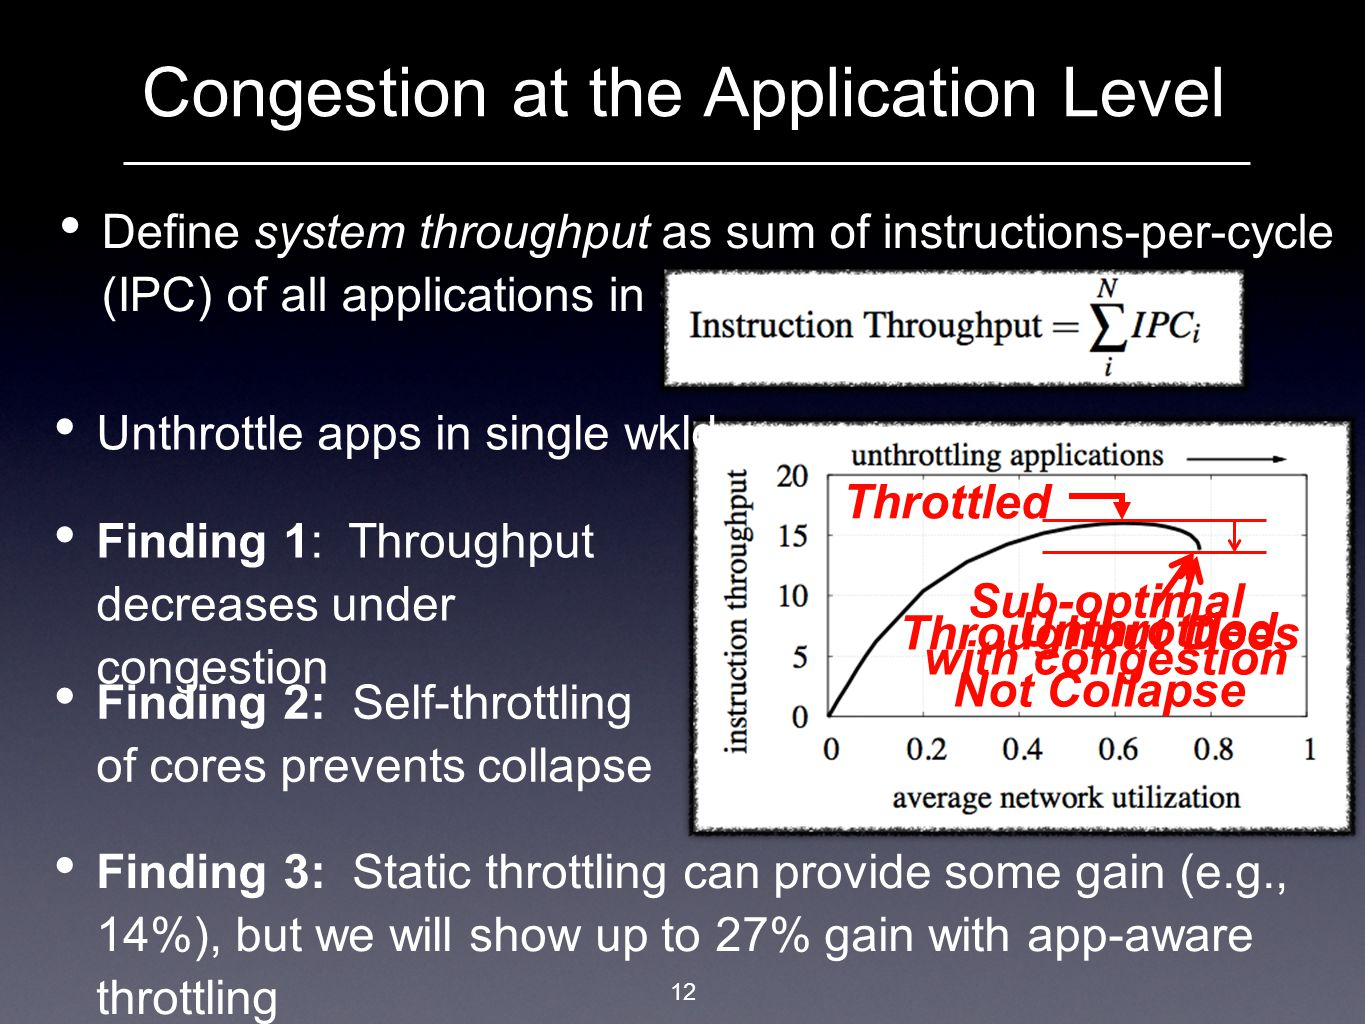 12 Congestion at the Application Level Define system throughput as sum of instructions-per-cycle (IPC) of all applications in system: Unthrottle apps in single wkld Sub-optimal with congestion Finding 1: Throughput decreases under congestion Finding 2: Self-throttling of cores prevents collapse Finding 3: Static throttling can provide some gain (e.g., 14%), but we will show up to 27% gain with app-aware throttling Throughput Does Not Collapse Throttled Unthrottled